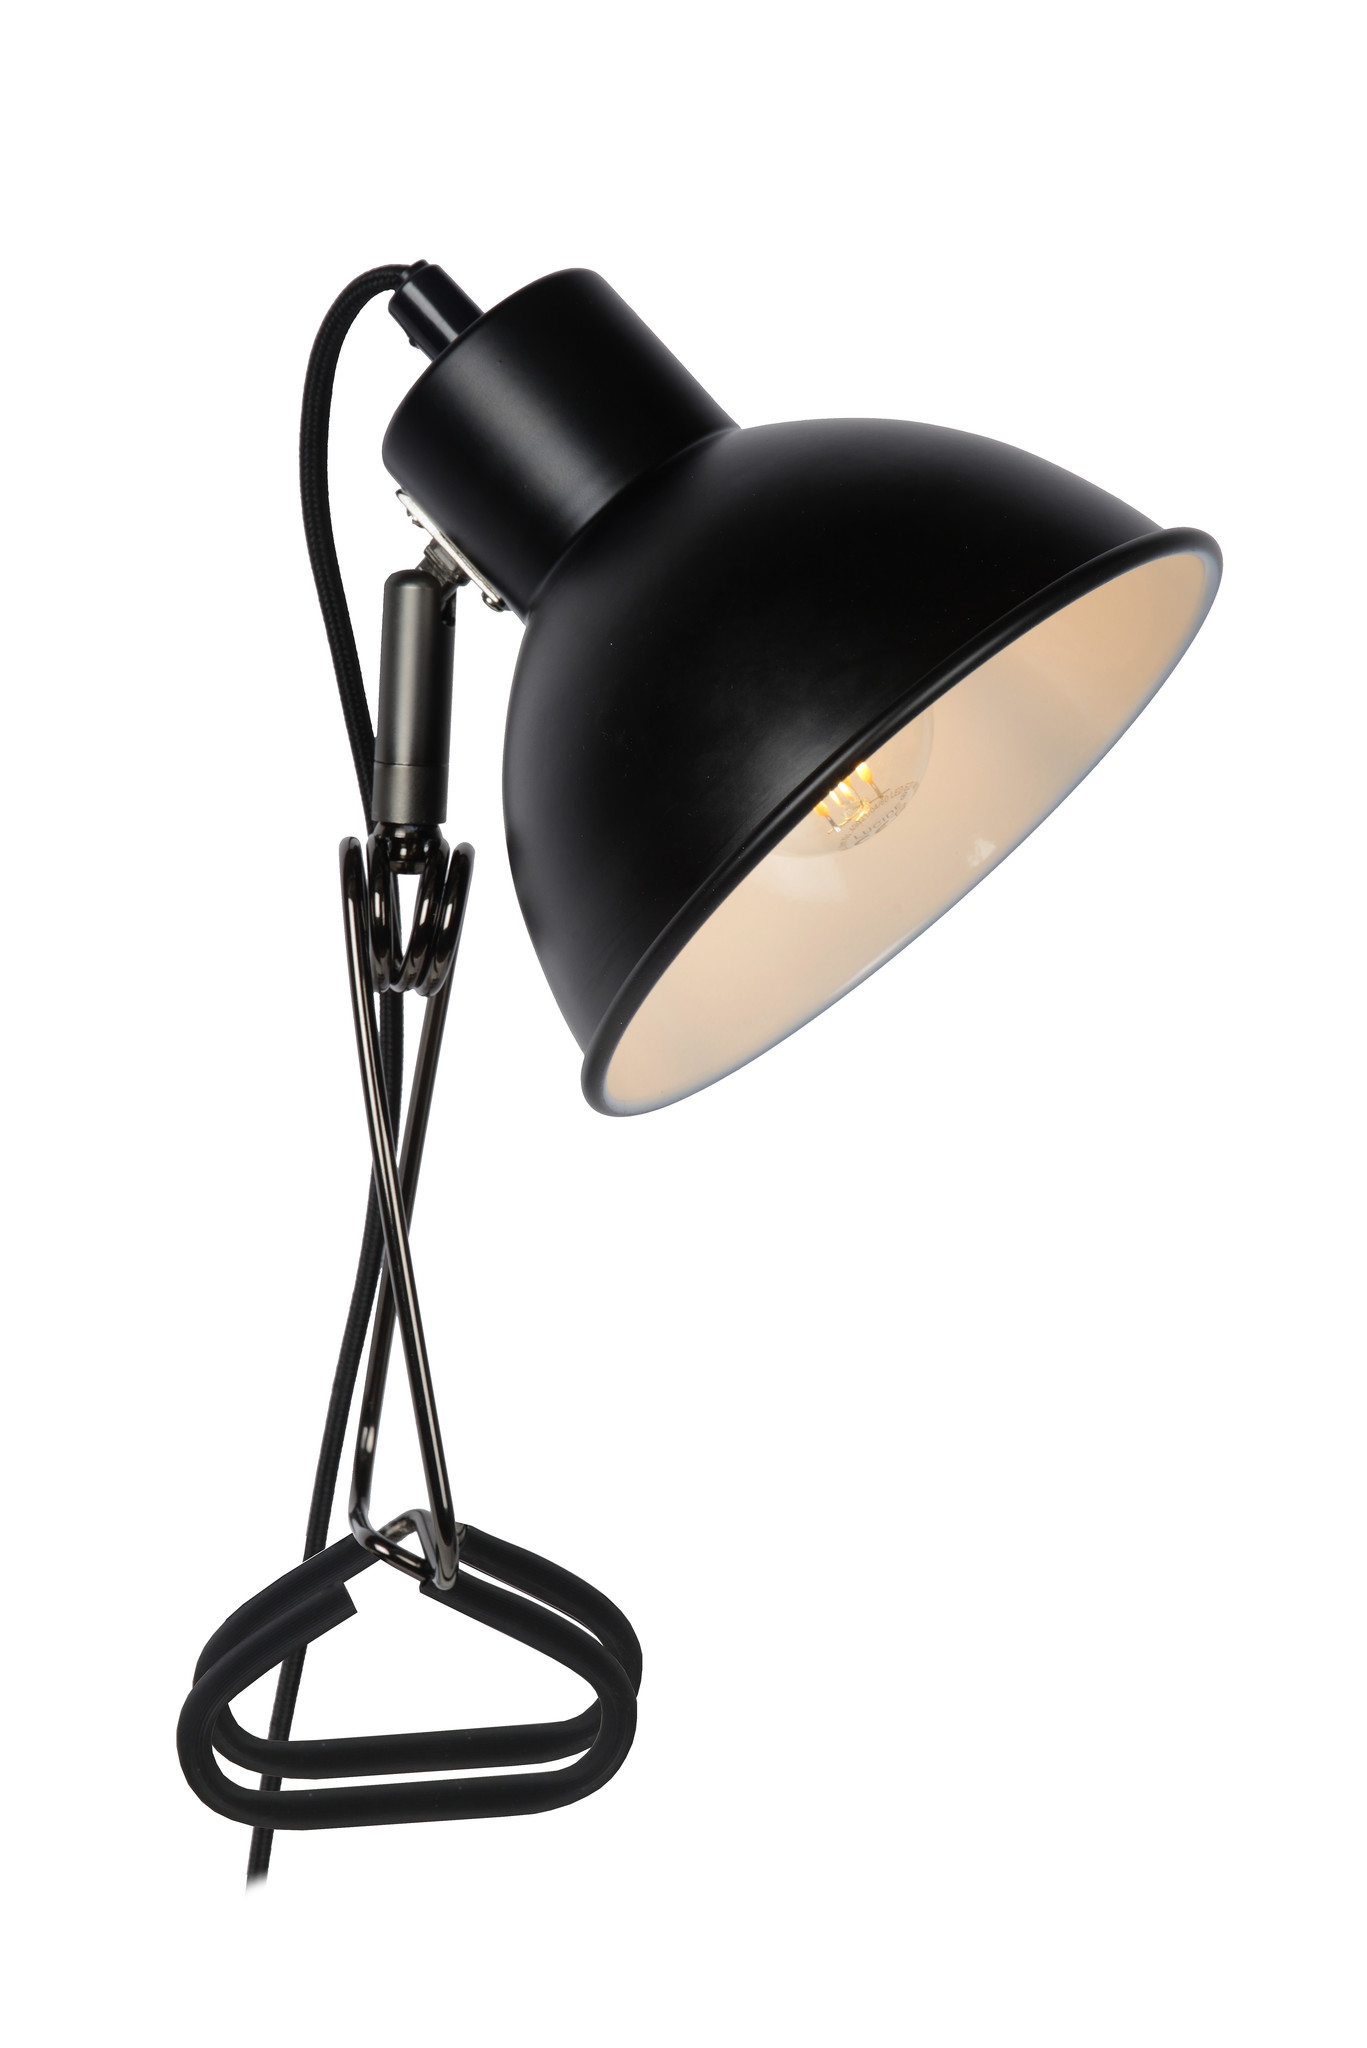 Lucide MOYS Klemlamp-Zwart-1xE27-40W-Staal